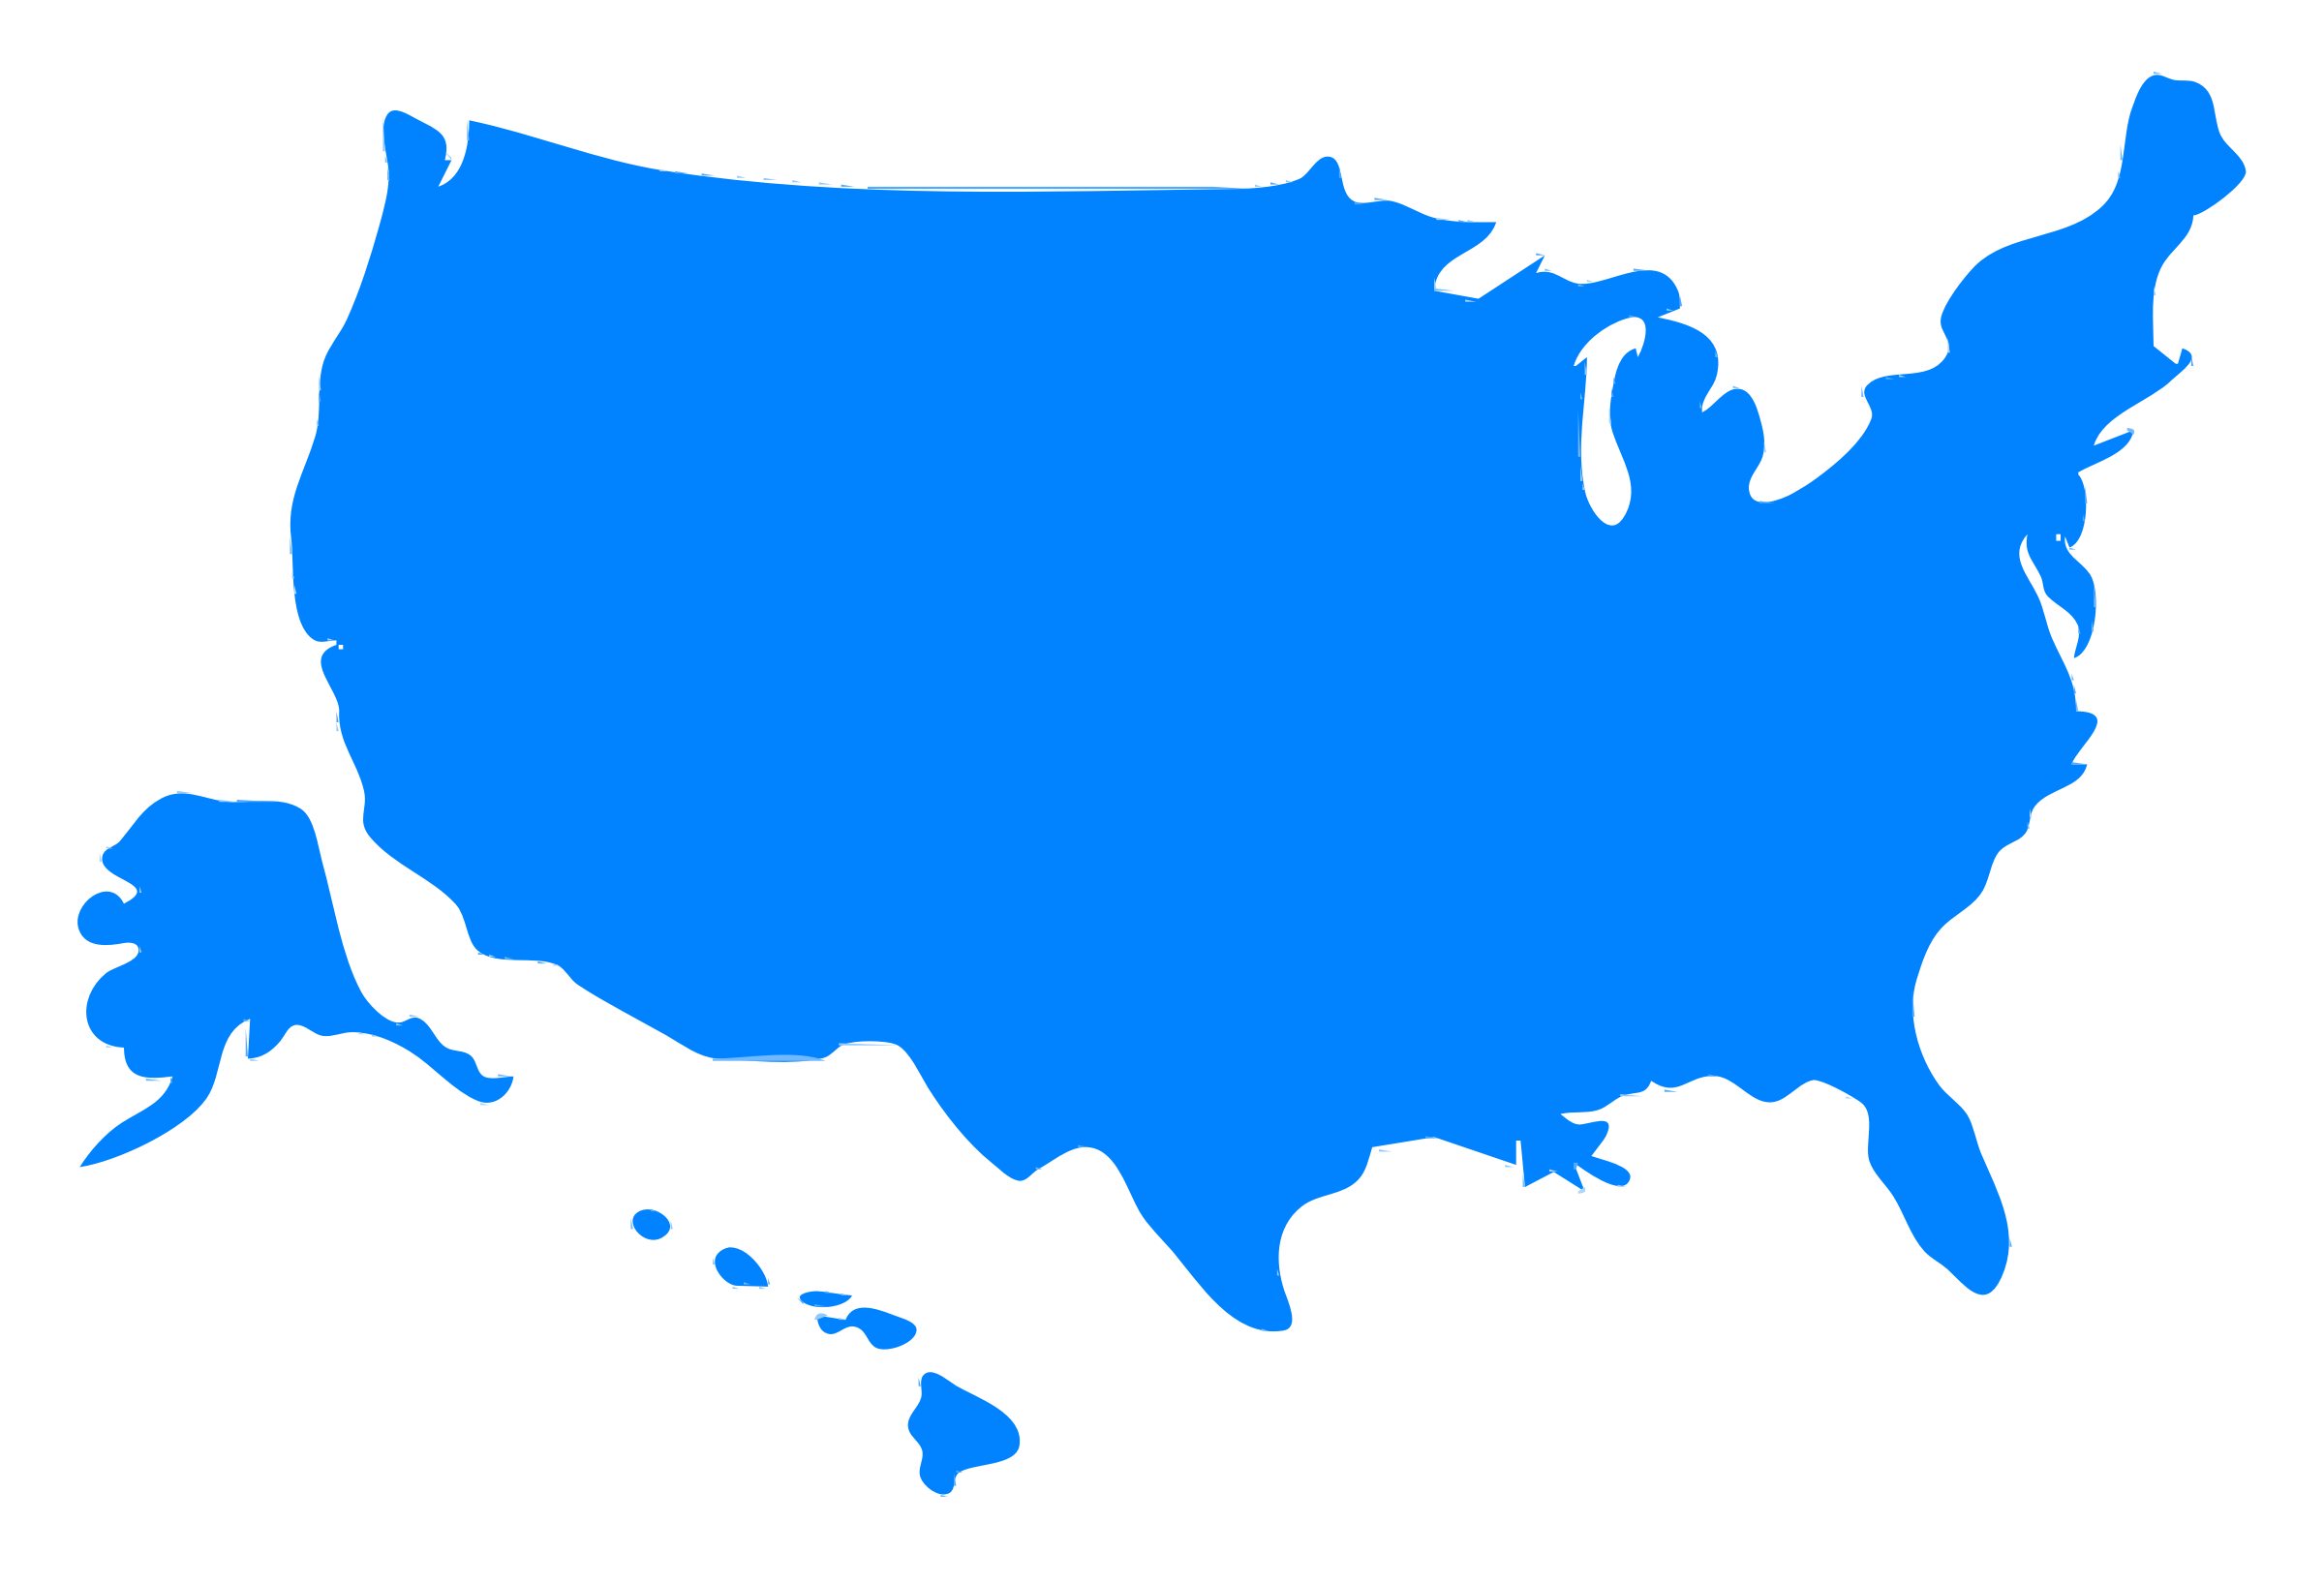 clip art map united states - photo #27